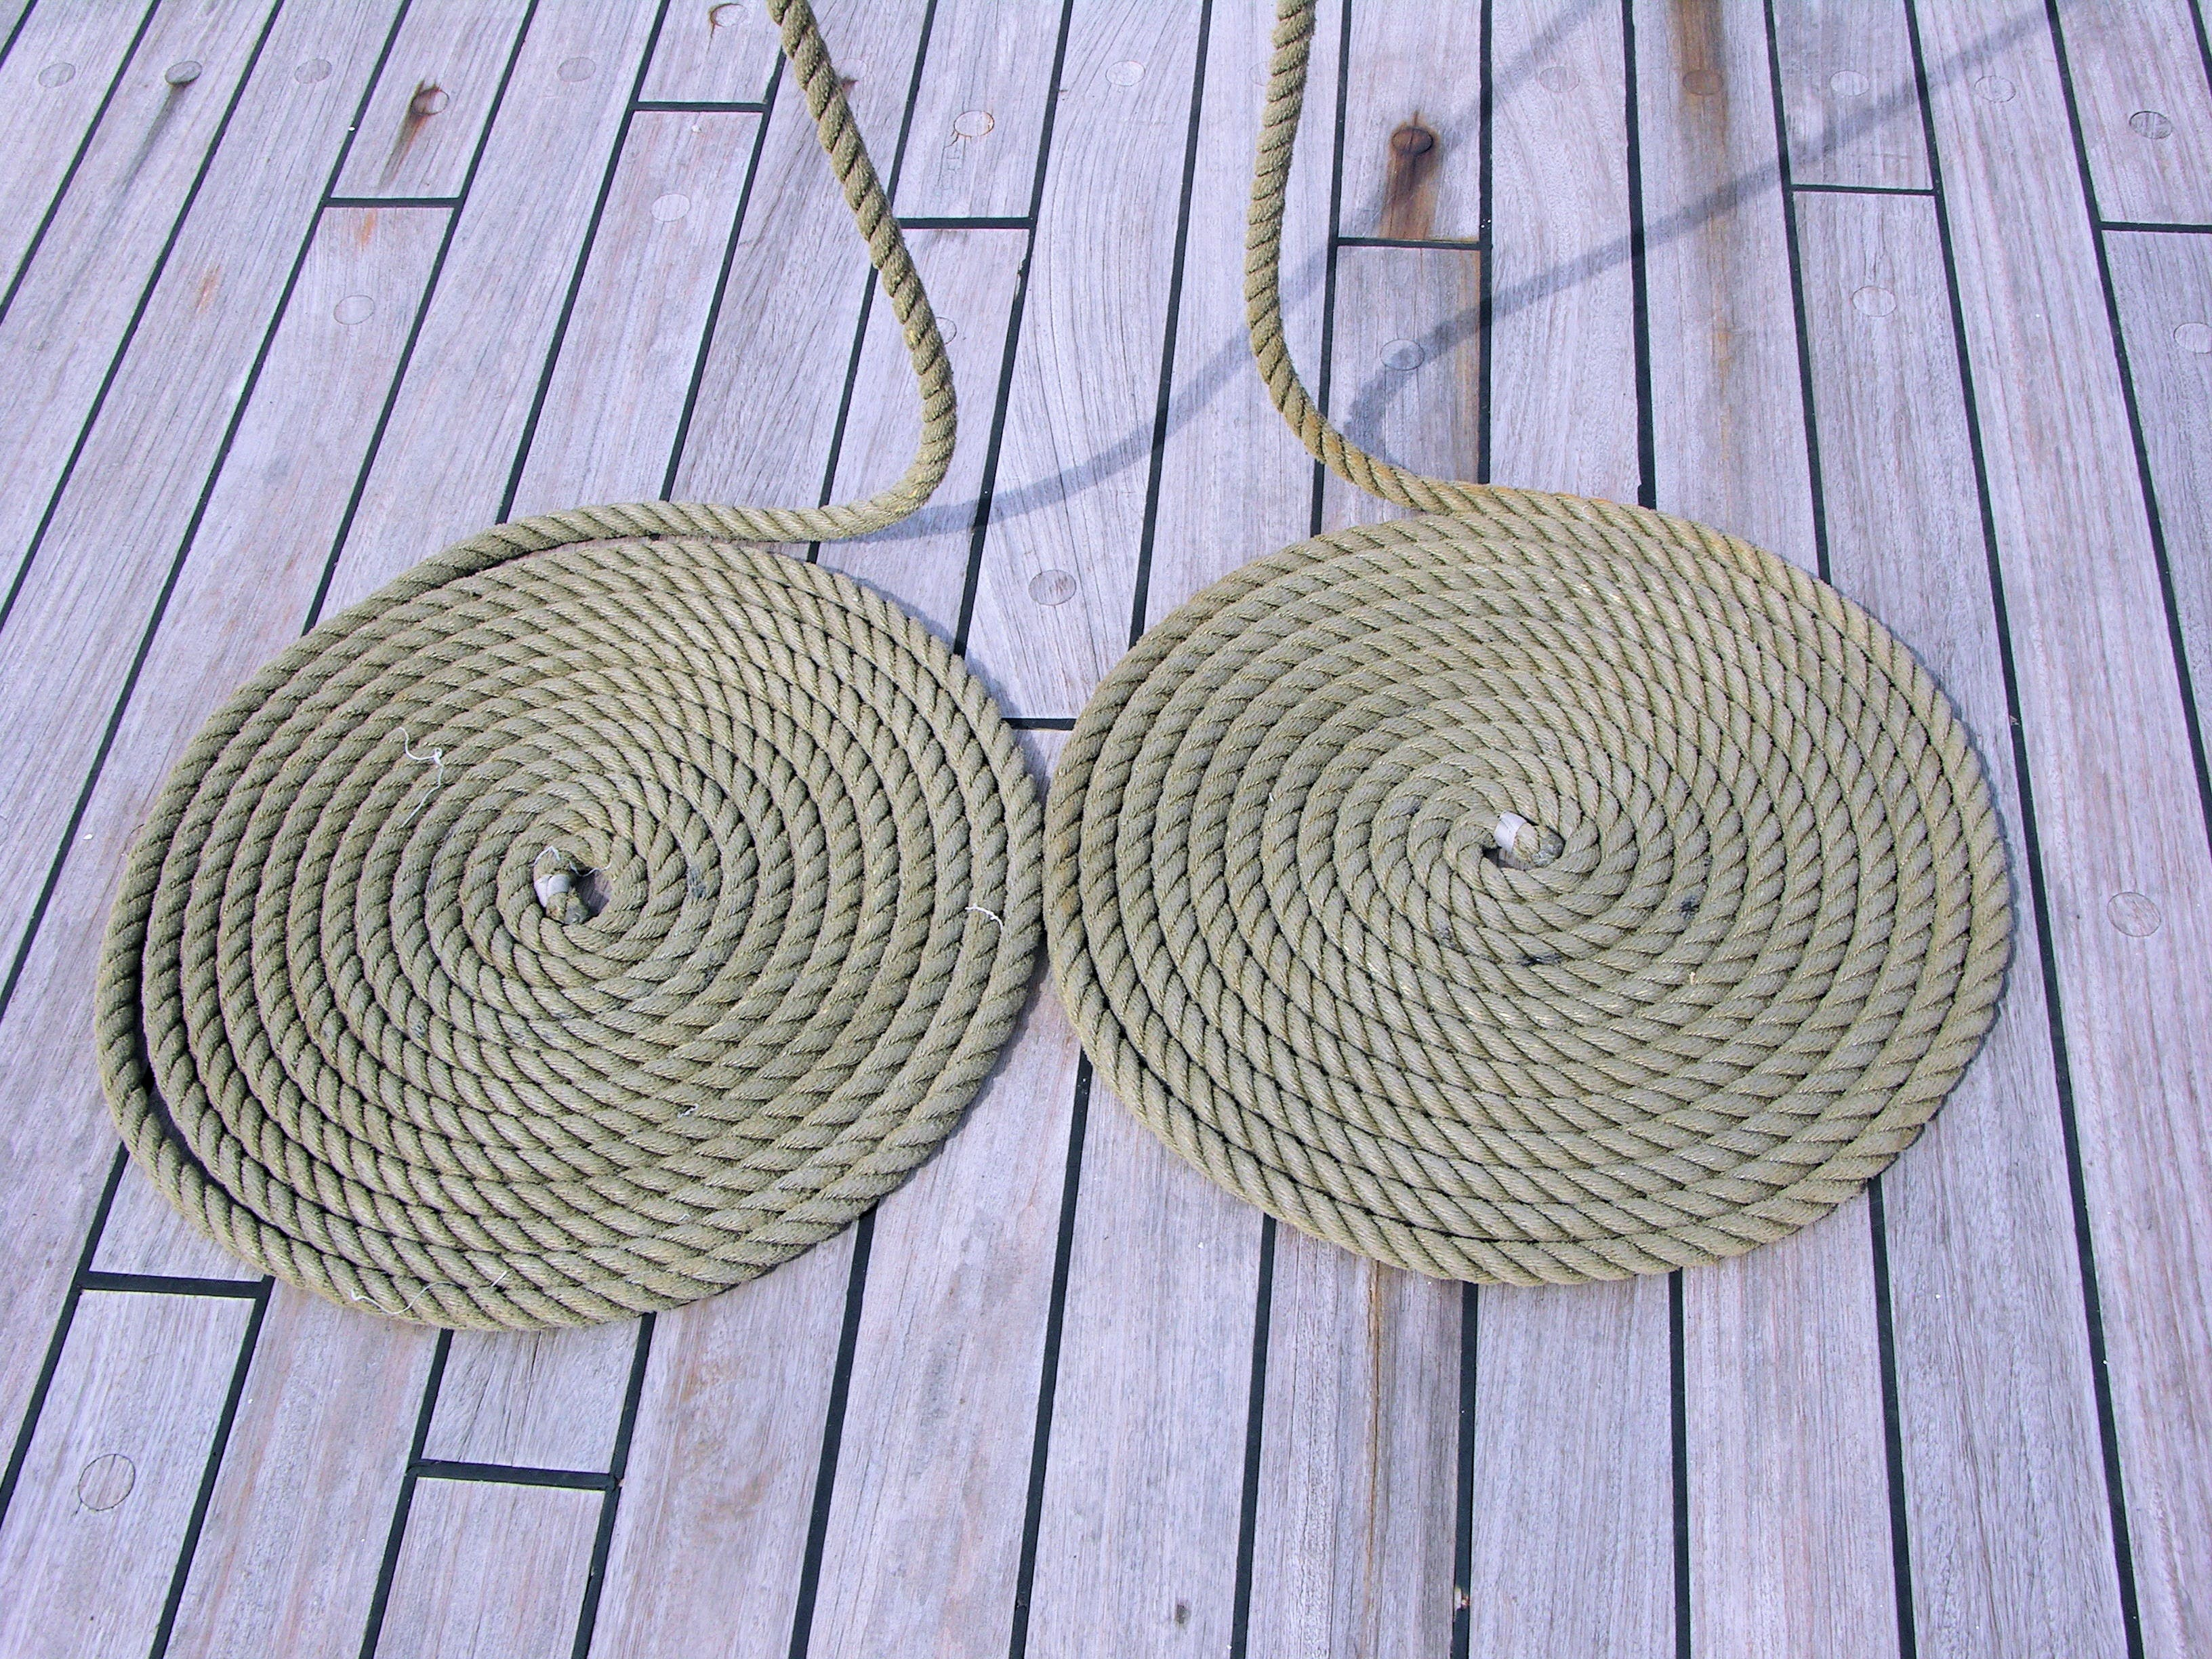 Two Round Brown Ropes